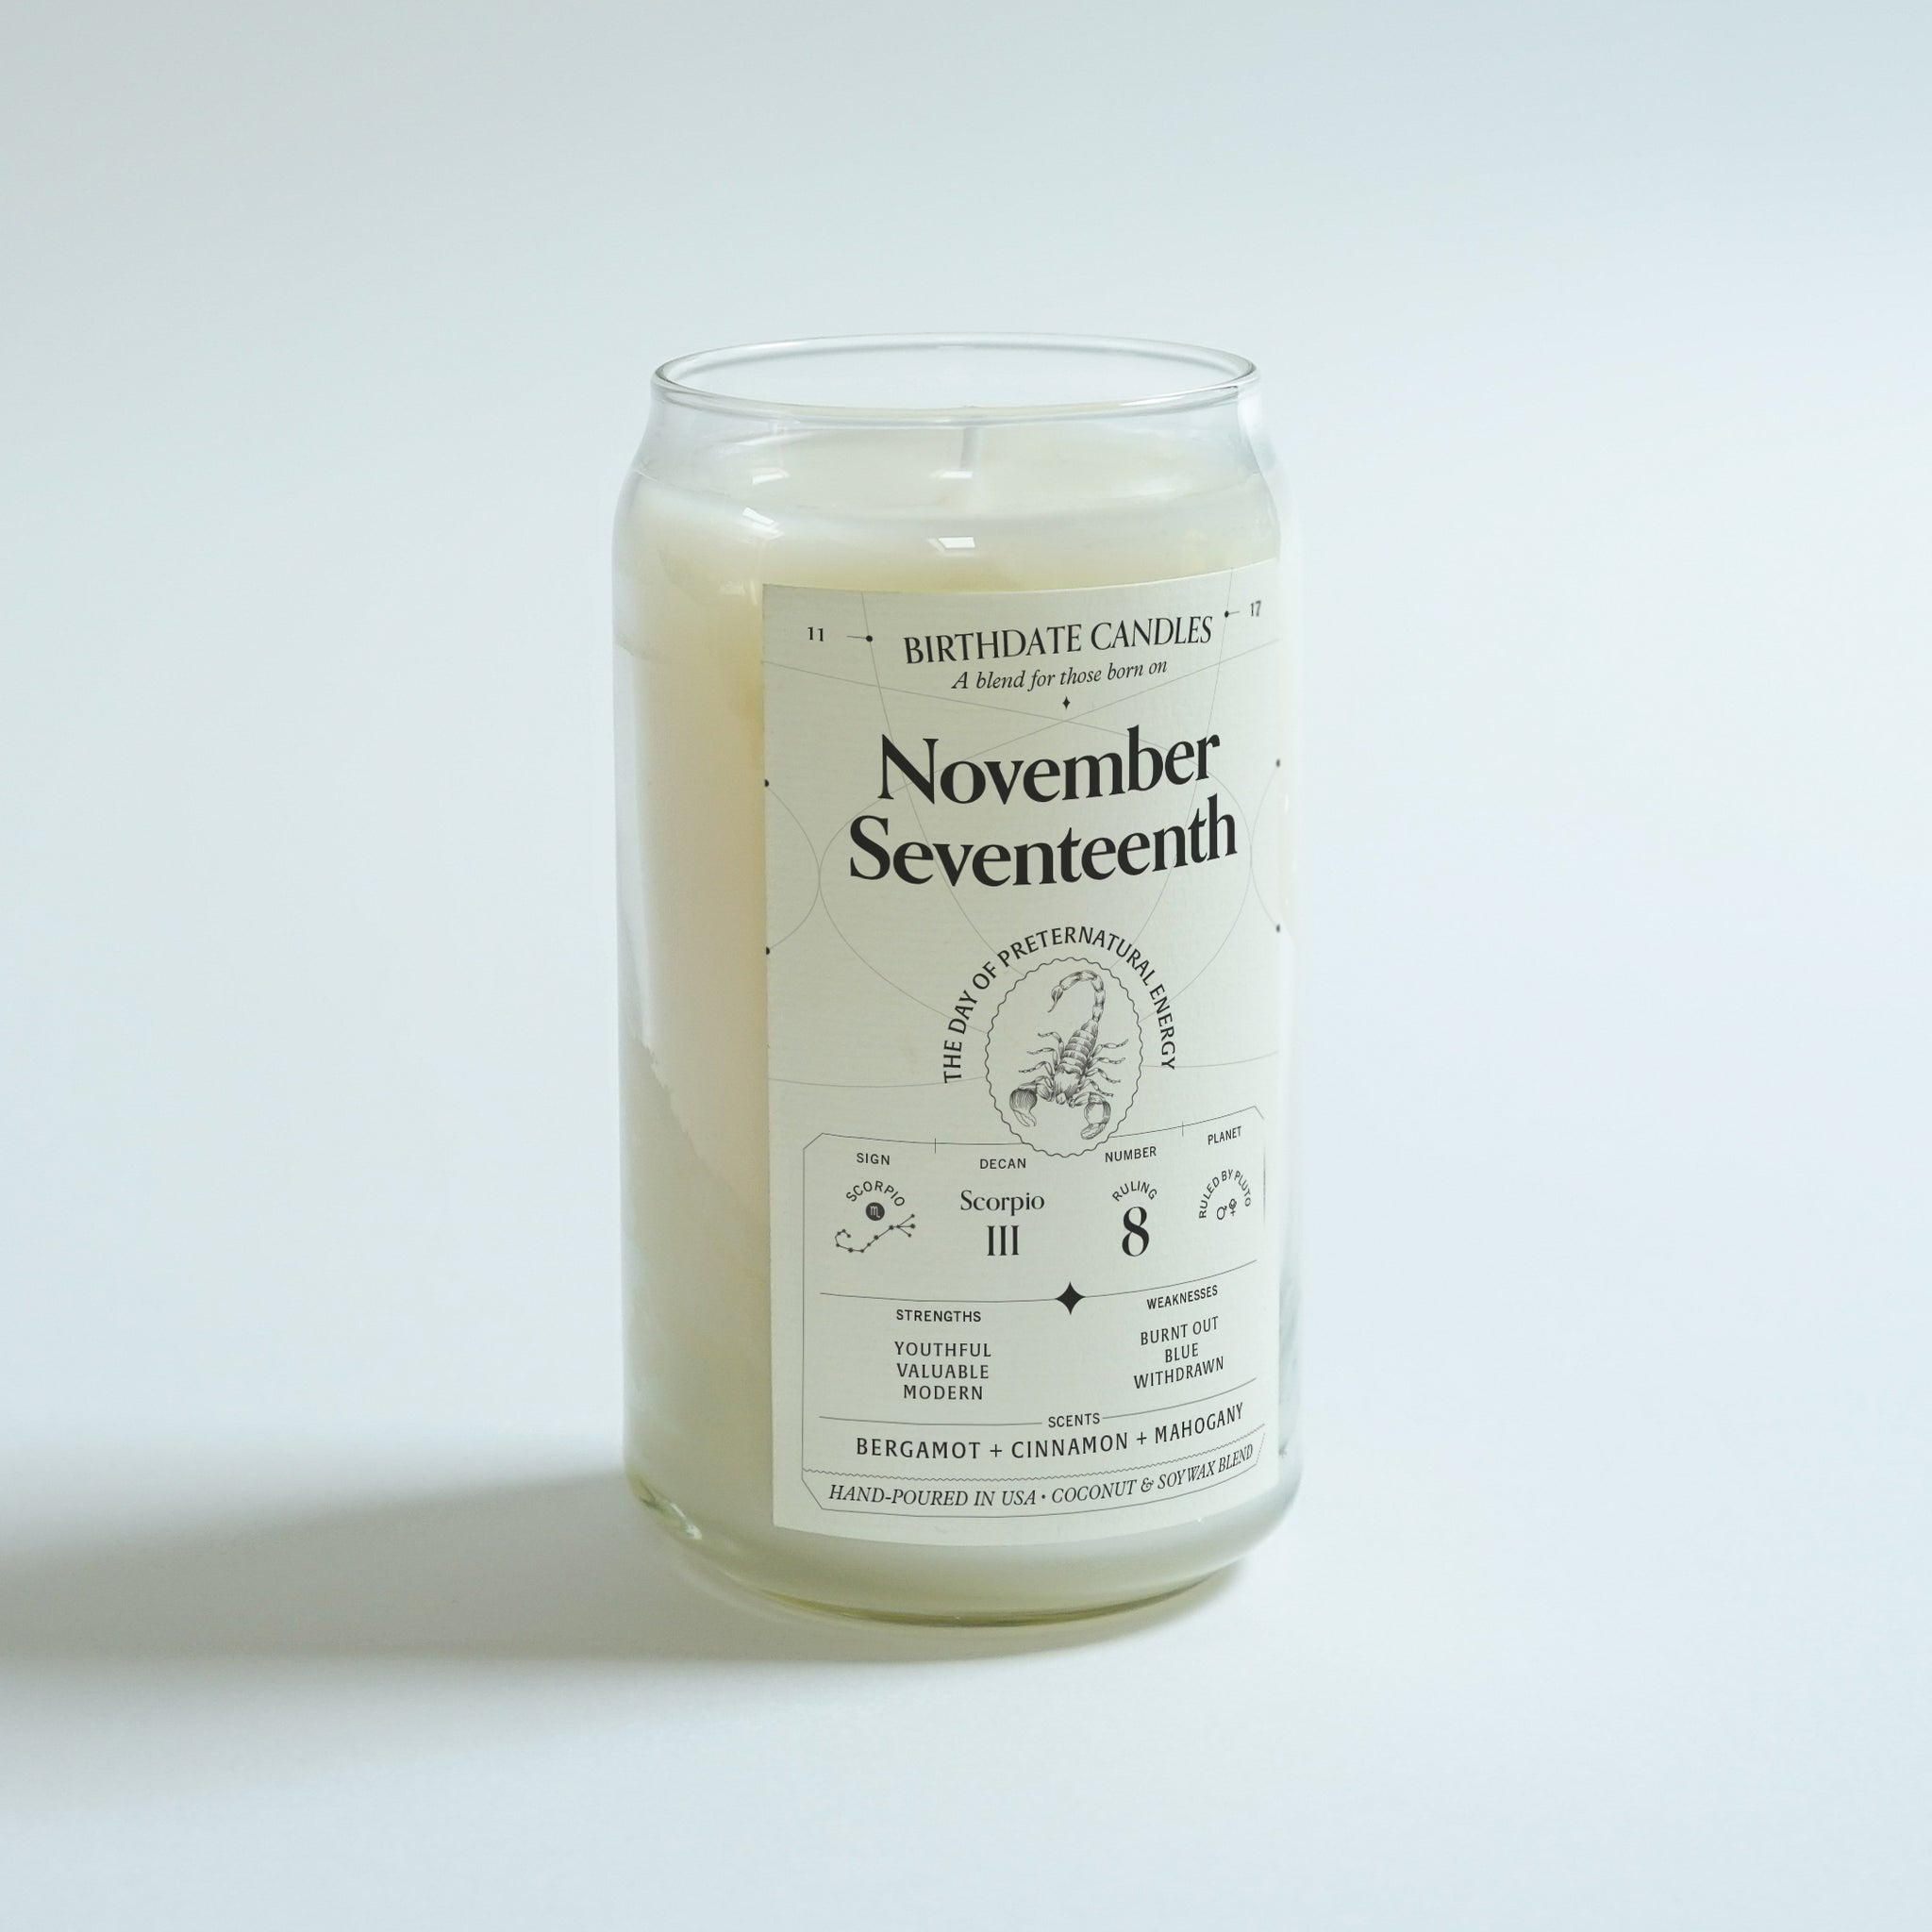 The November Seventeenth Birthday Candle